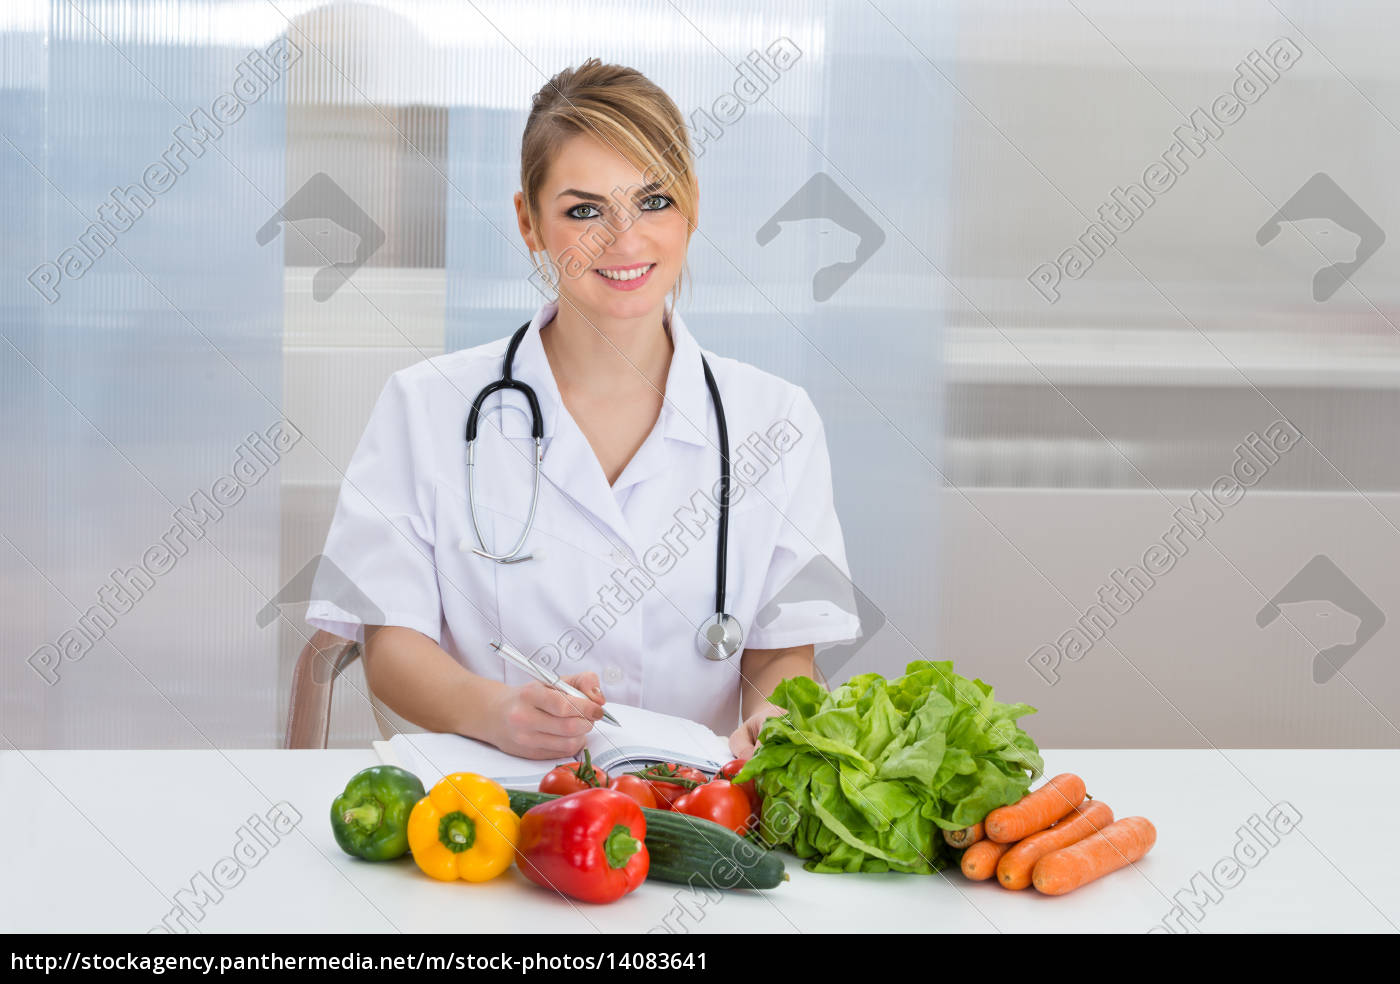 portrait, of, happy, female, dietician - 14083641